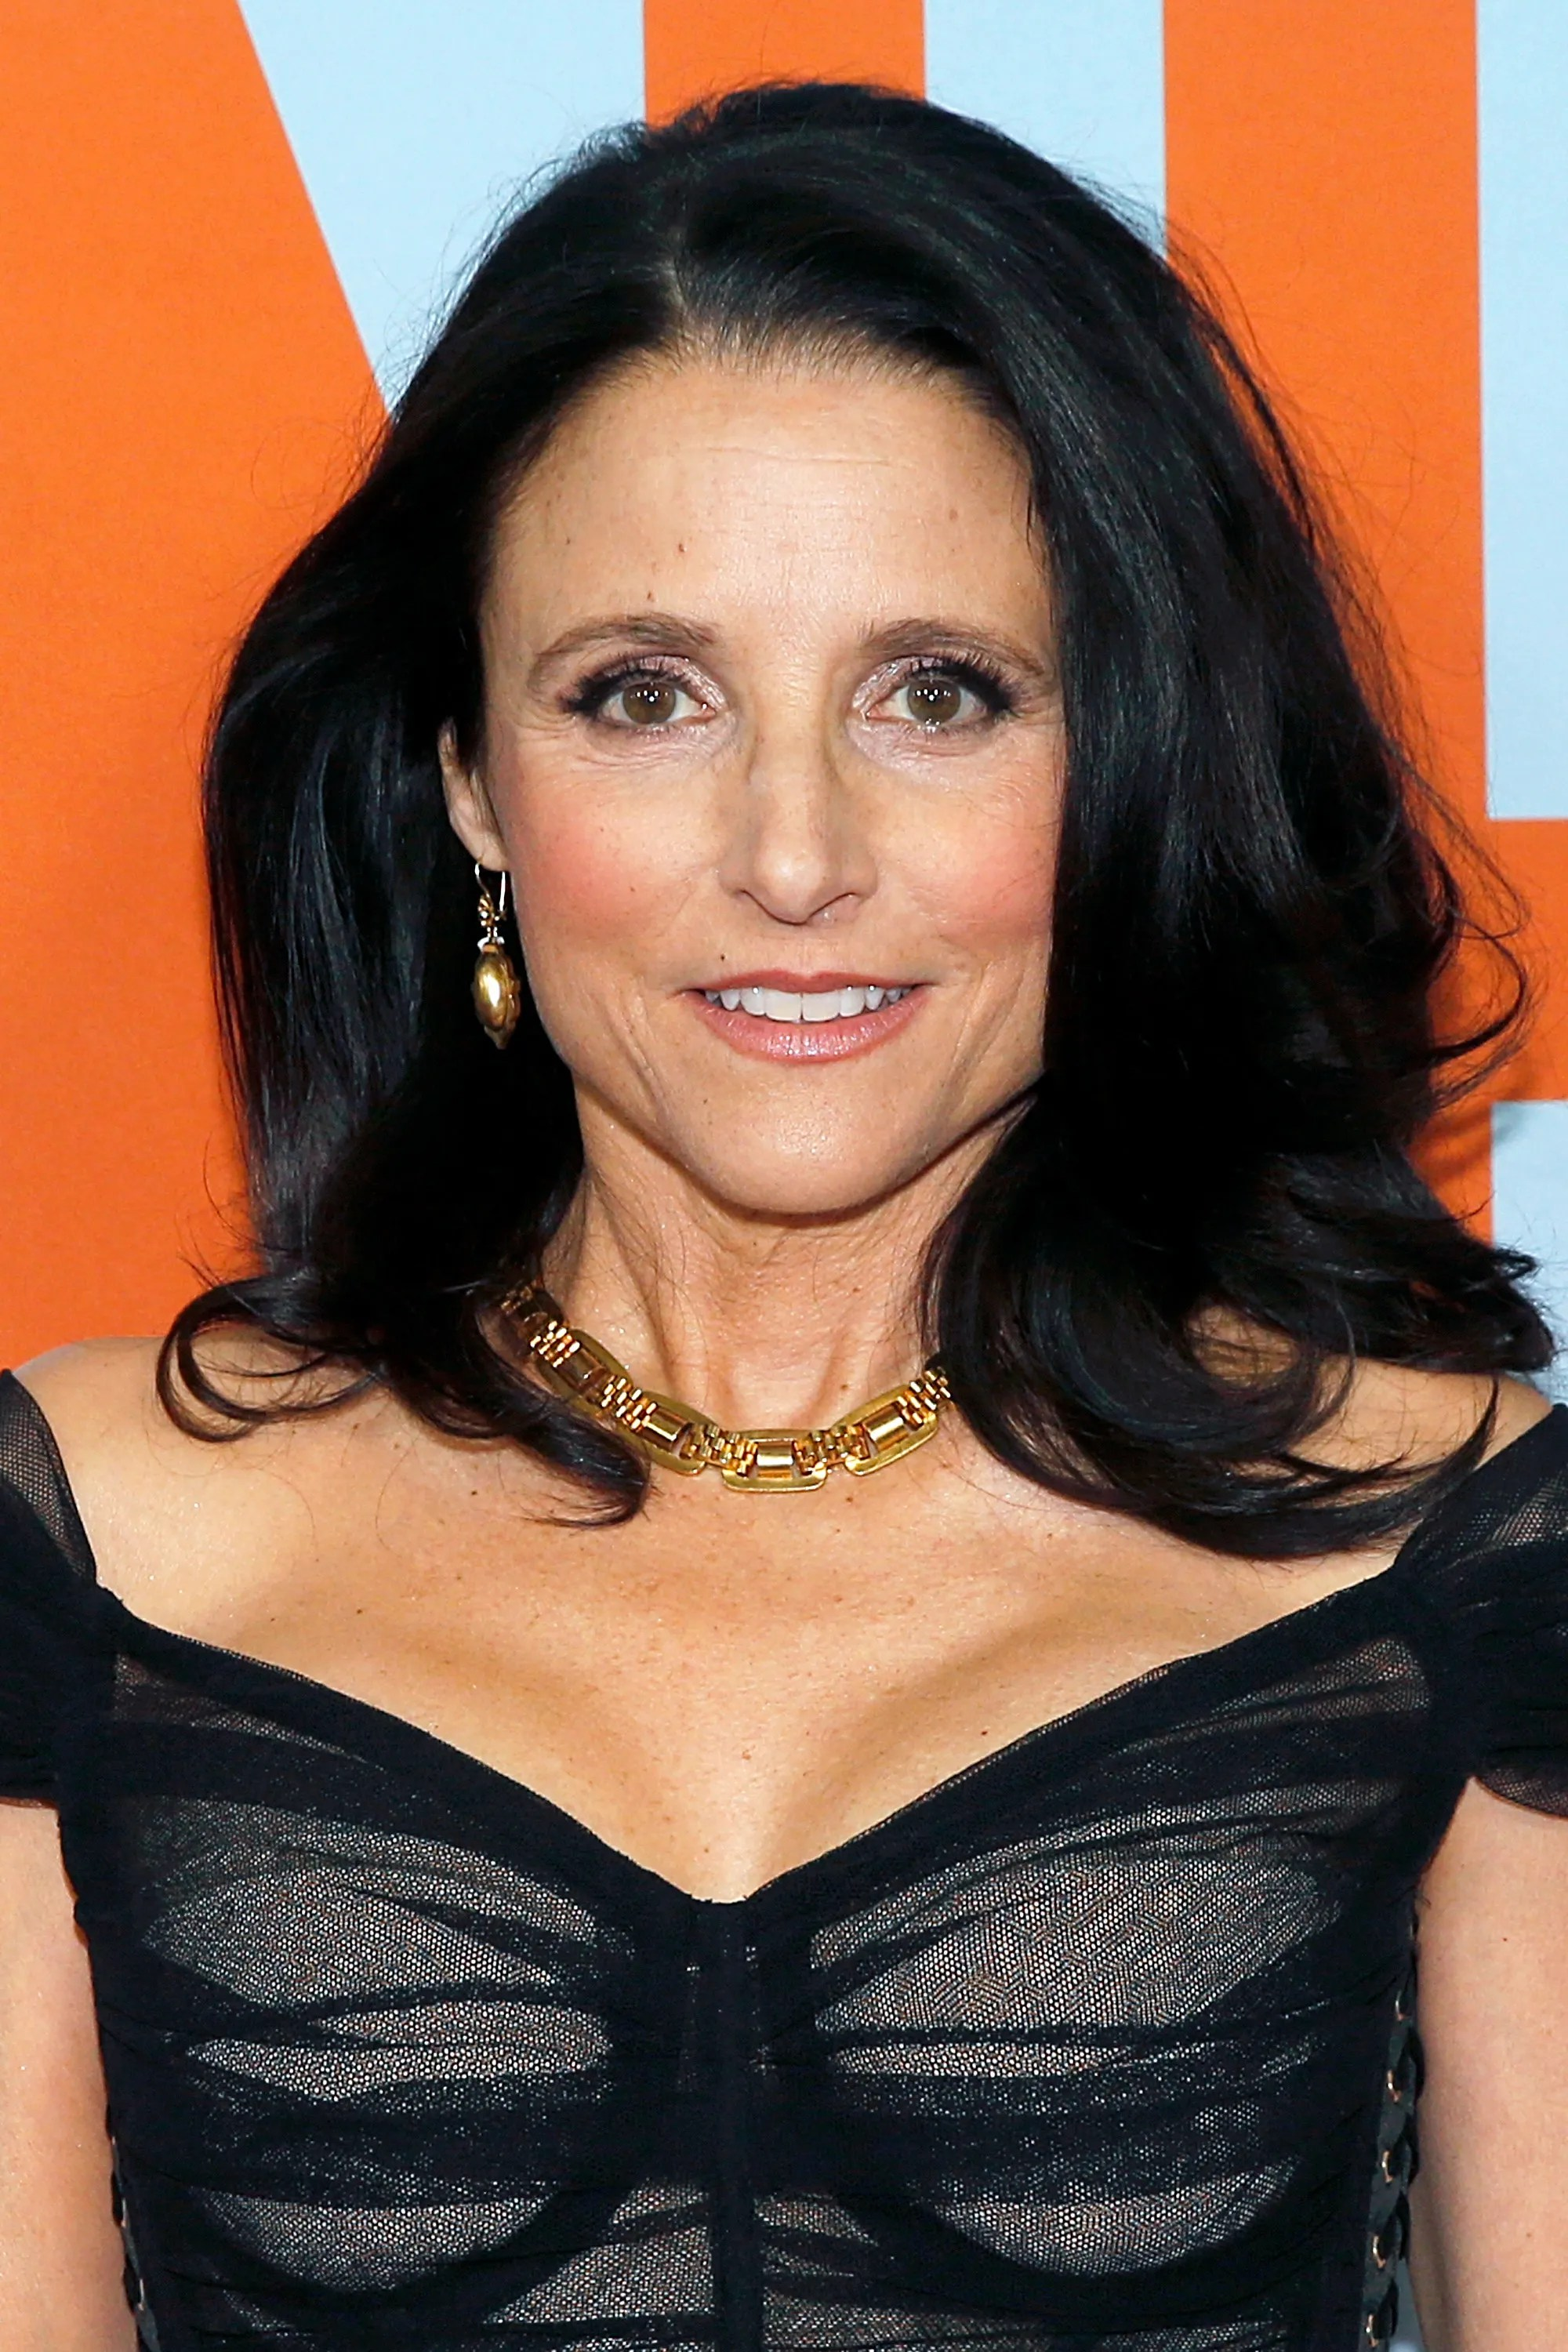 Normally a pretty private person, Julia Louis-Dreyfus recently told USA TODAY she went public with her breast cancer battle in part because